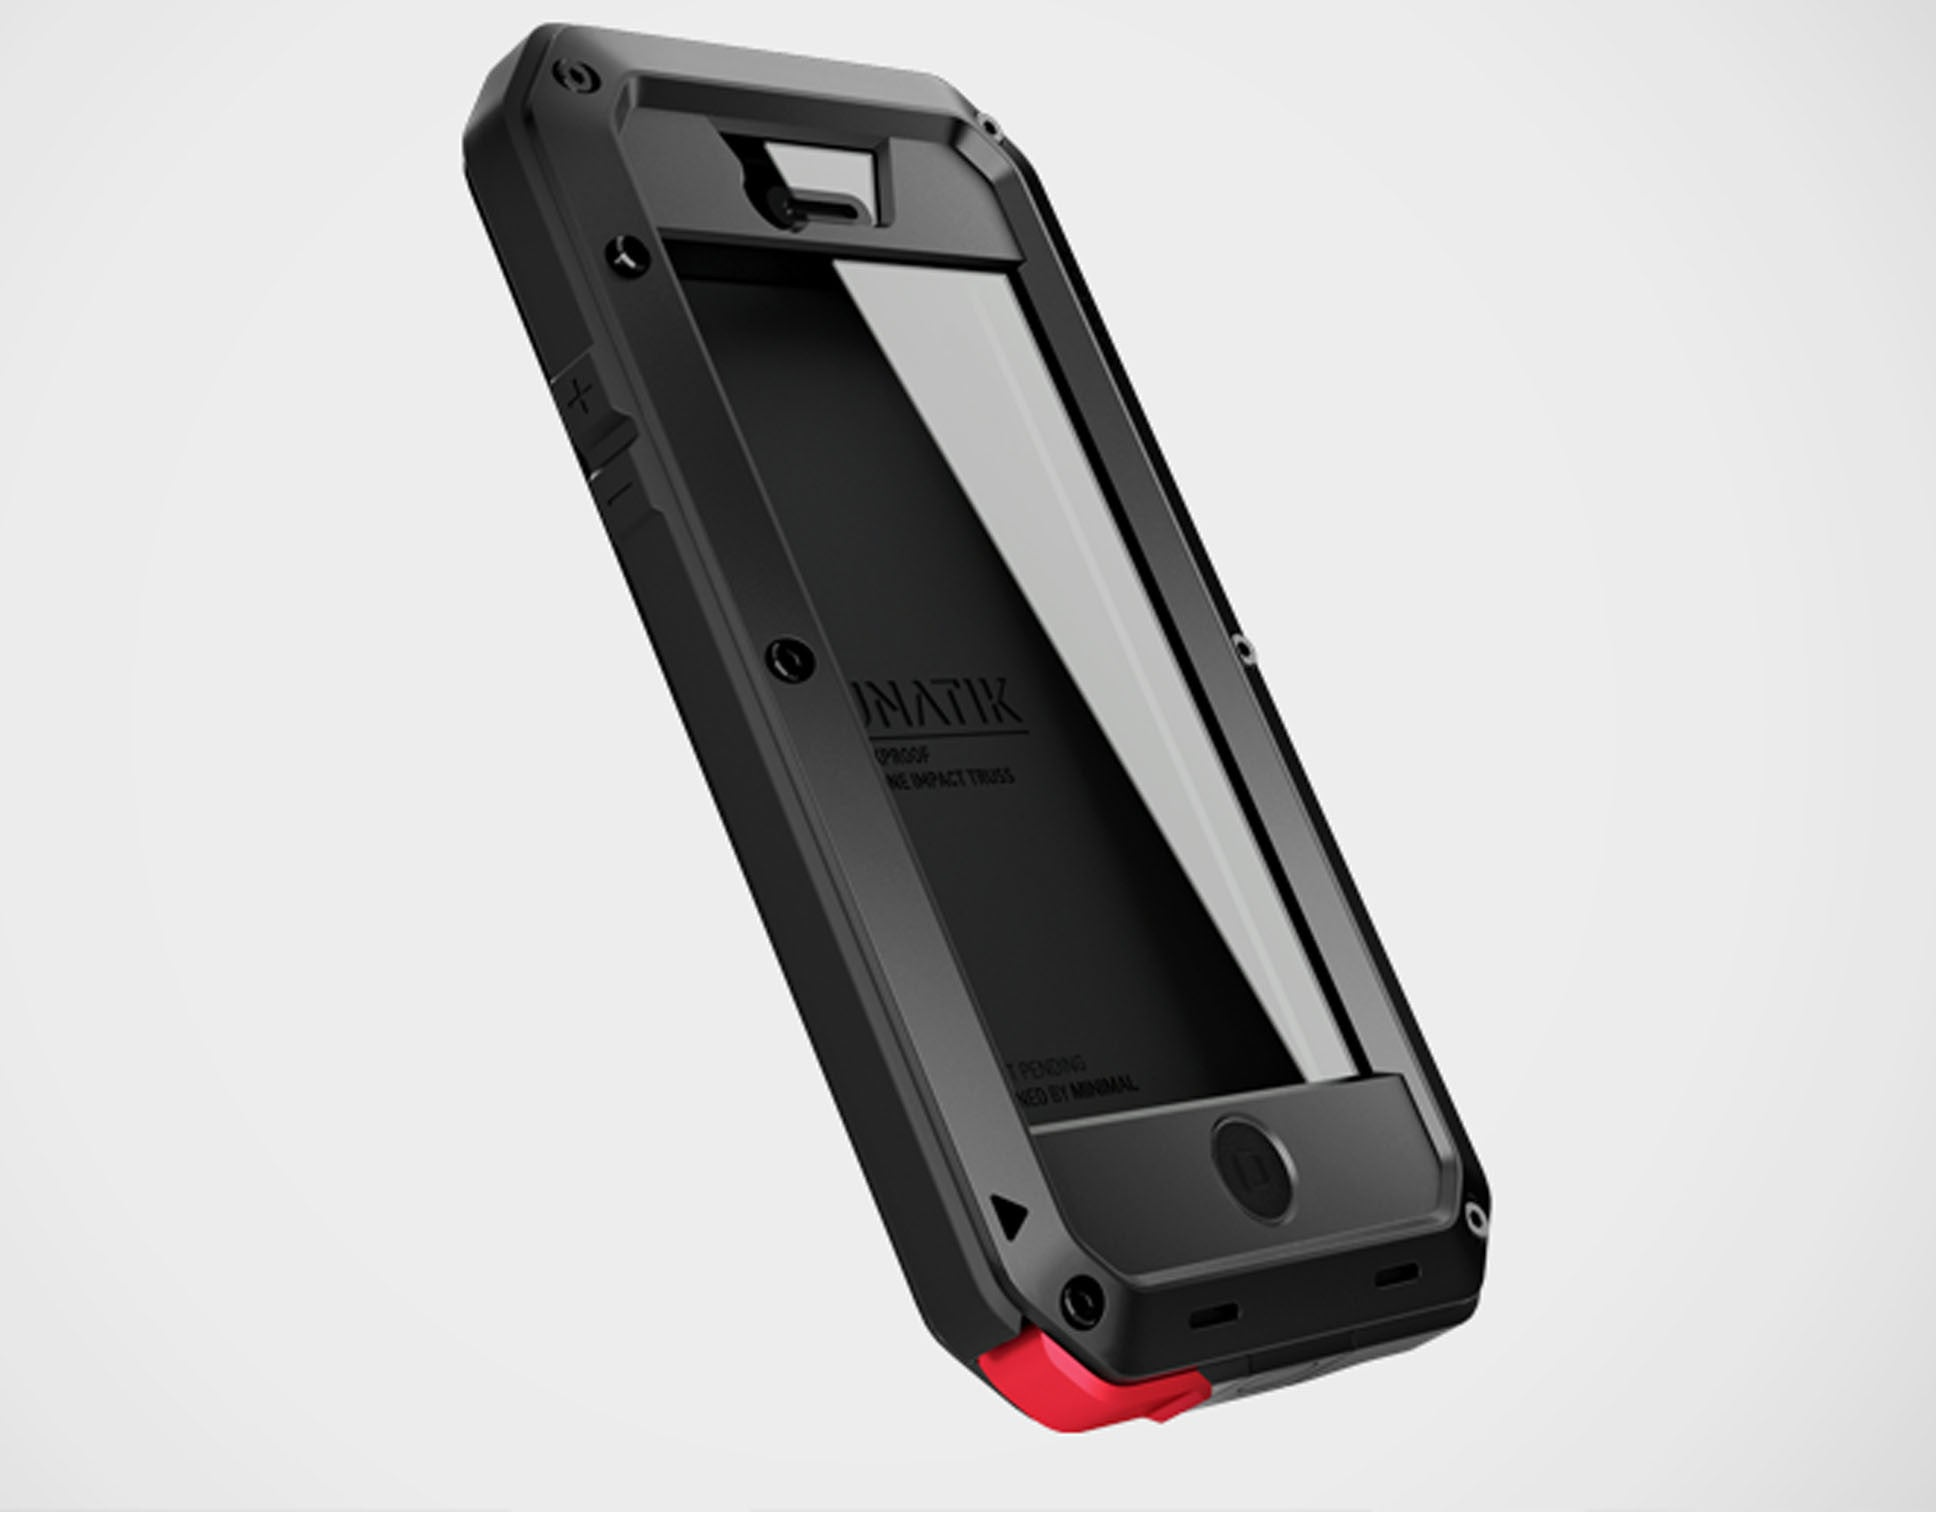 half off 3cb6c fbc88 Lunatik Taktik EXTREME iPhone 5s/5 Case - Ultra-rugged Protection